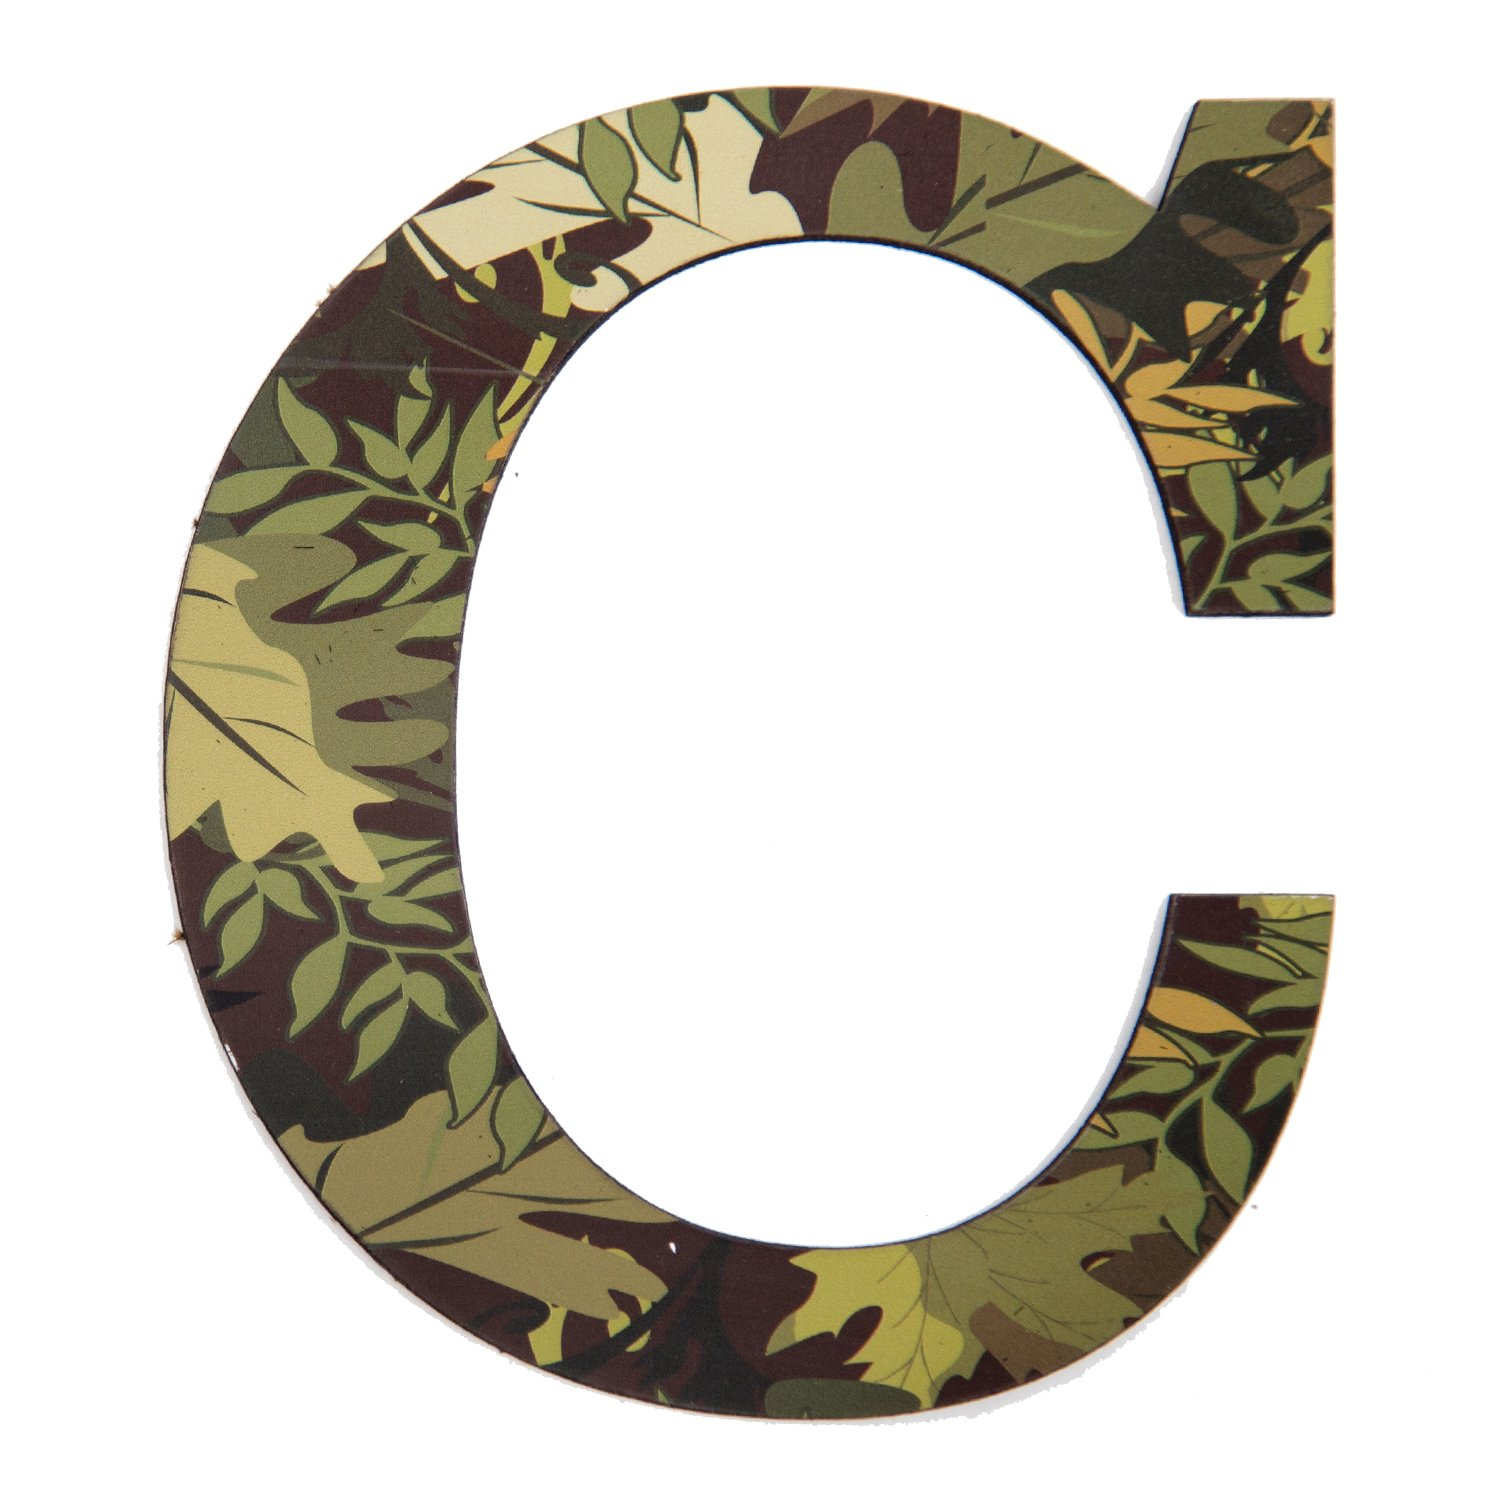 Amazon Com 11 Tall Mossy Oak Designer Camo Wall Letter C Camo Pattern 3d Wall Decor Unique Wall Initial For Living Room Bedroom Man Cave Boys Room Girls